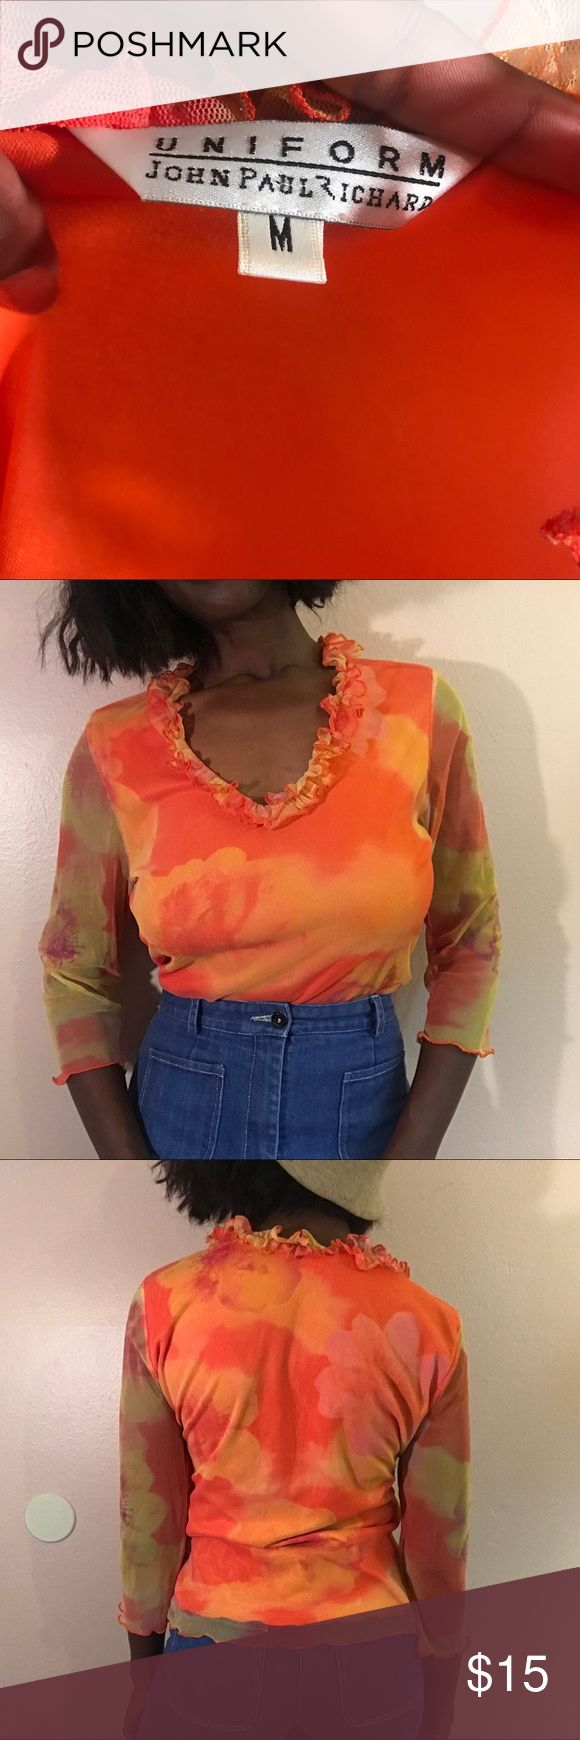 Orange and yellow mesh floral top medium Steal my sunshine with this orange and yellow floral top! Mesh shoulders and froufrou collar. Size medium! 🌞🌞🌞 DM TO PURCHASE!! #jonhnpaulrichard #top #blouse #mesh #floral #womenswear #womensfashion #womensclothing #clothing #shirt #sunshine #sun #flowers #floral #vintage #retro #luxury #ebay #poshmark #depop #expensive #luxury #vinted #smallbusiness #blackowned #90s #style Tops Blouses